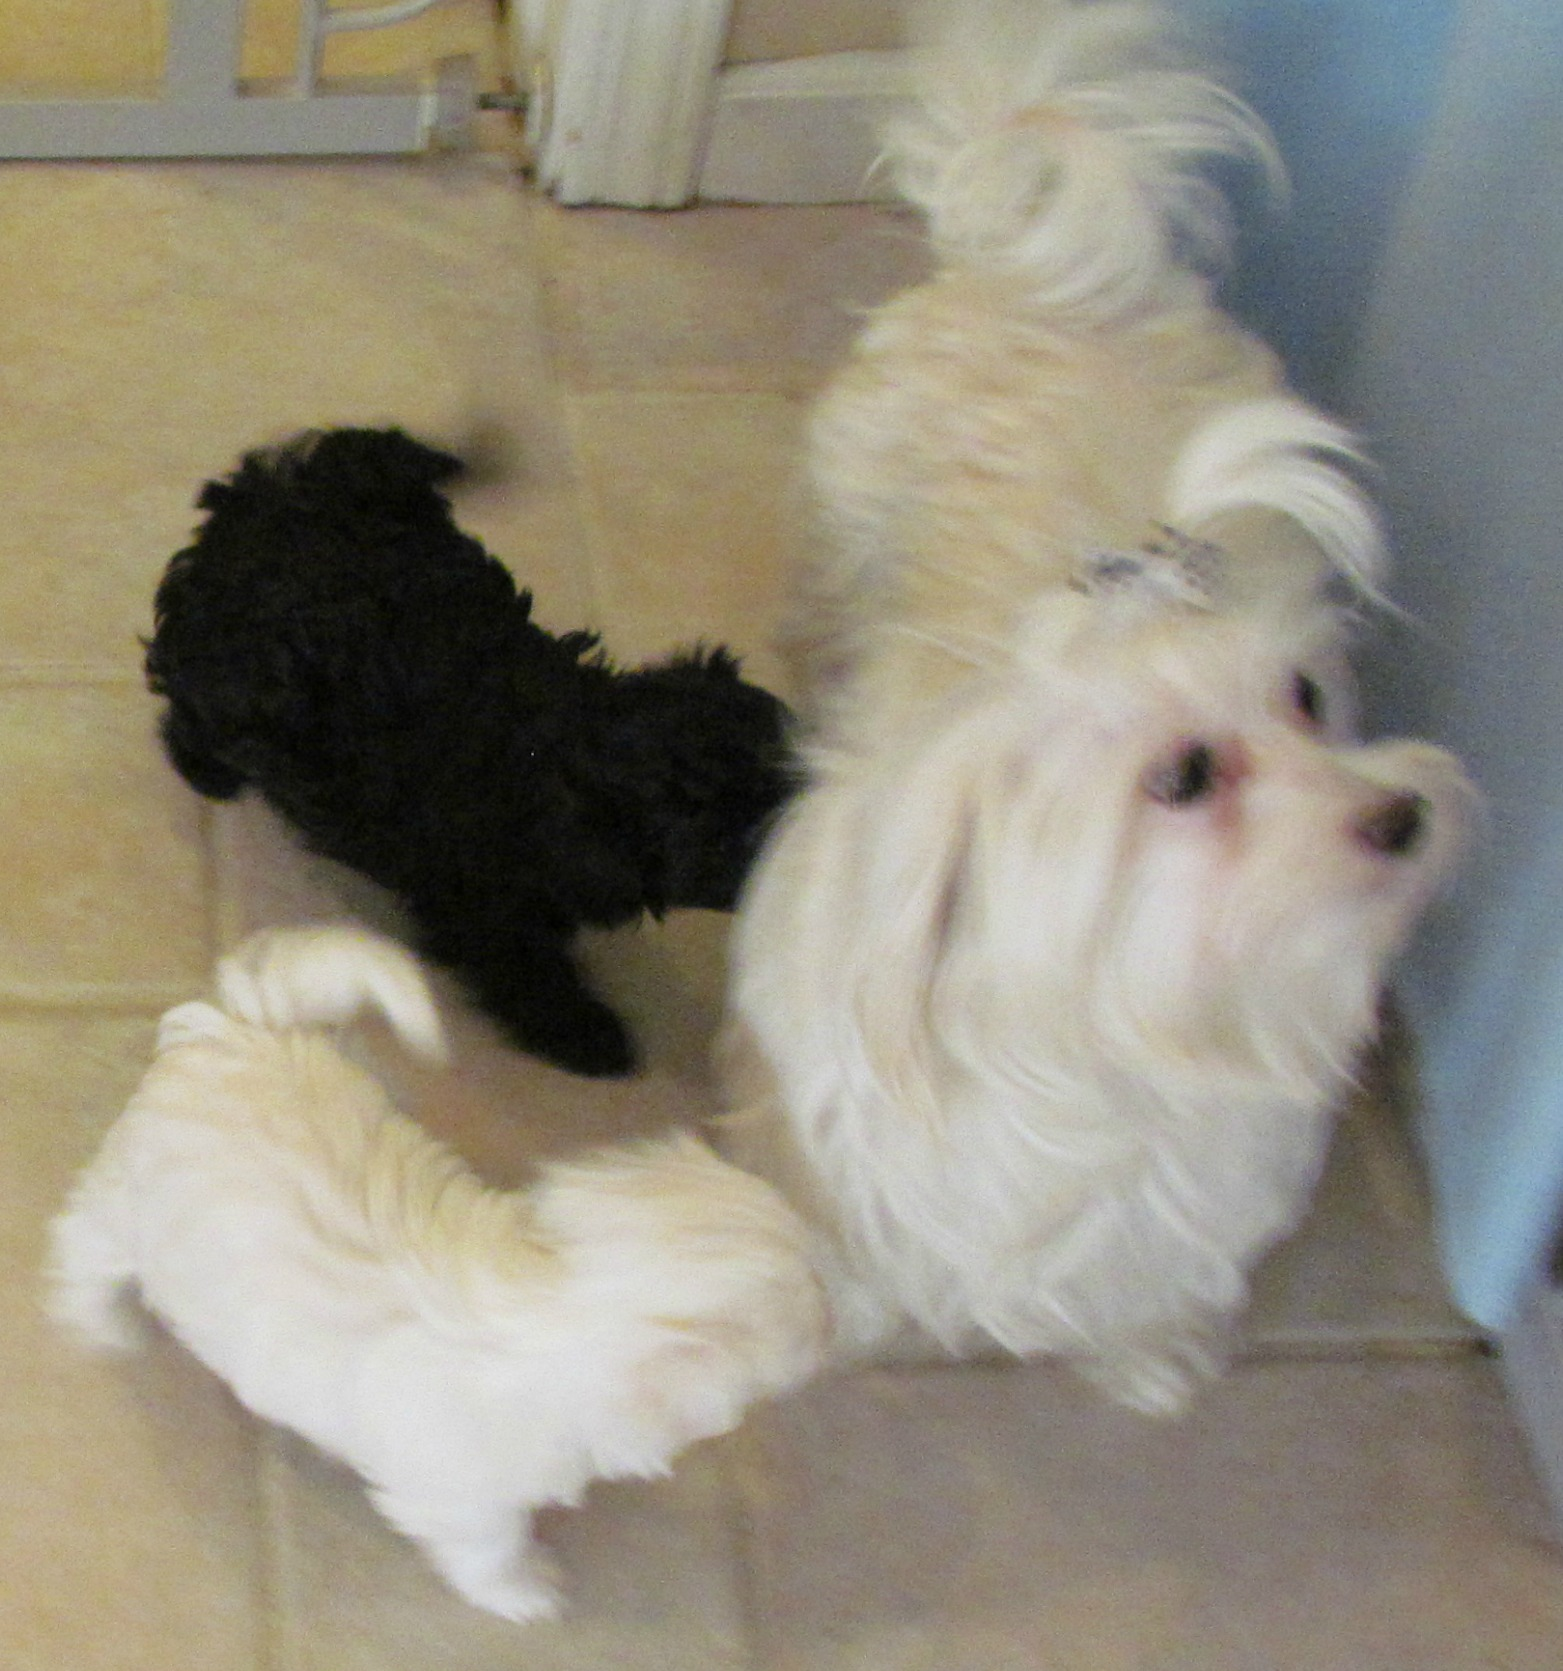 Maltese Dame and her malti-poo puppies